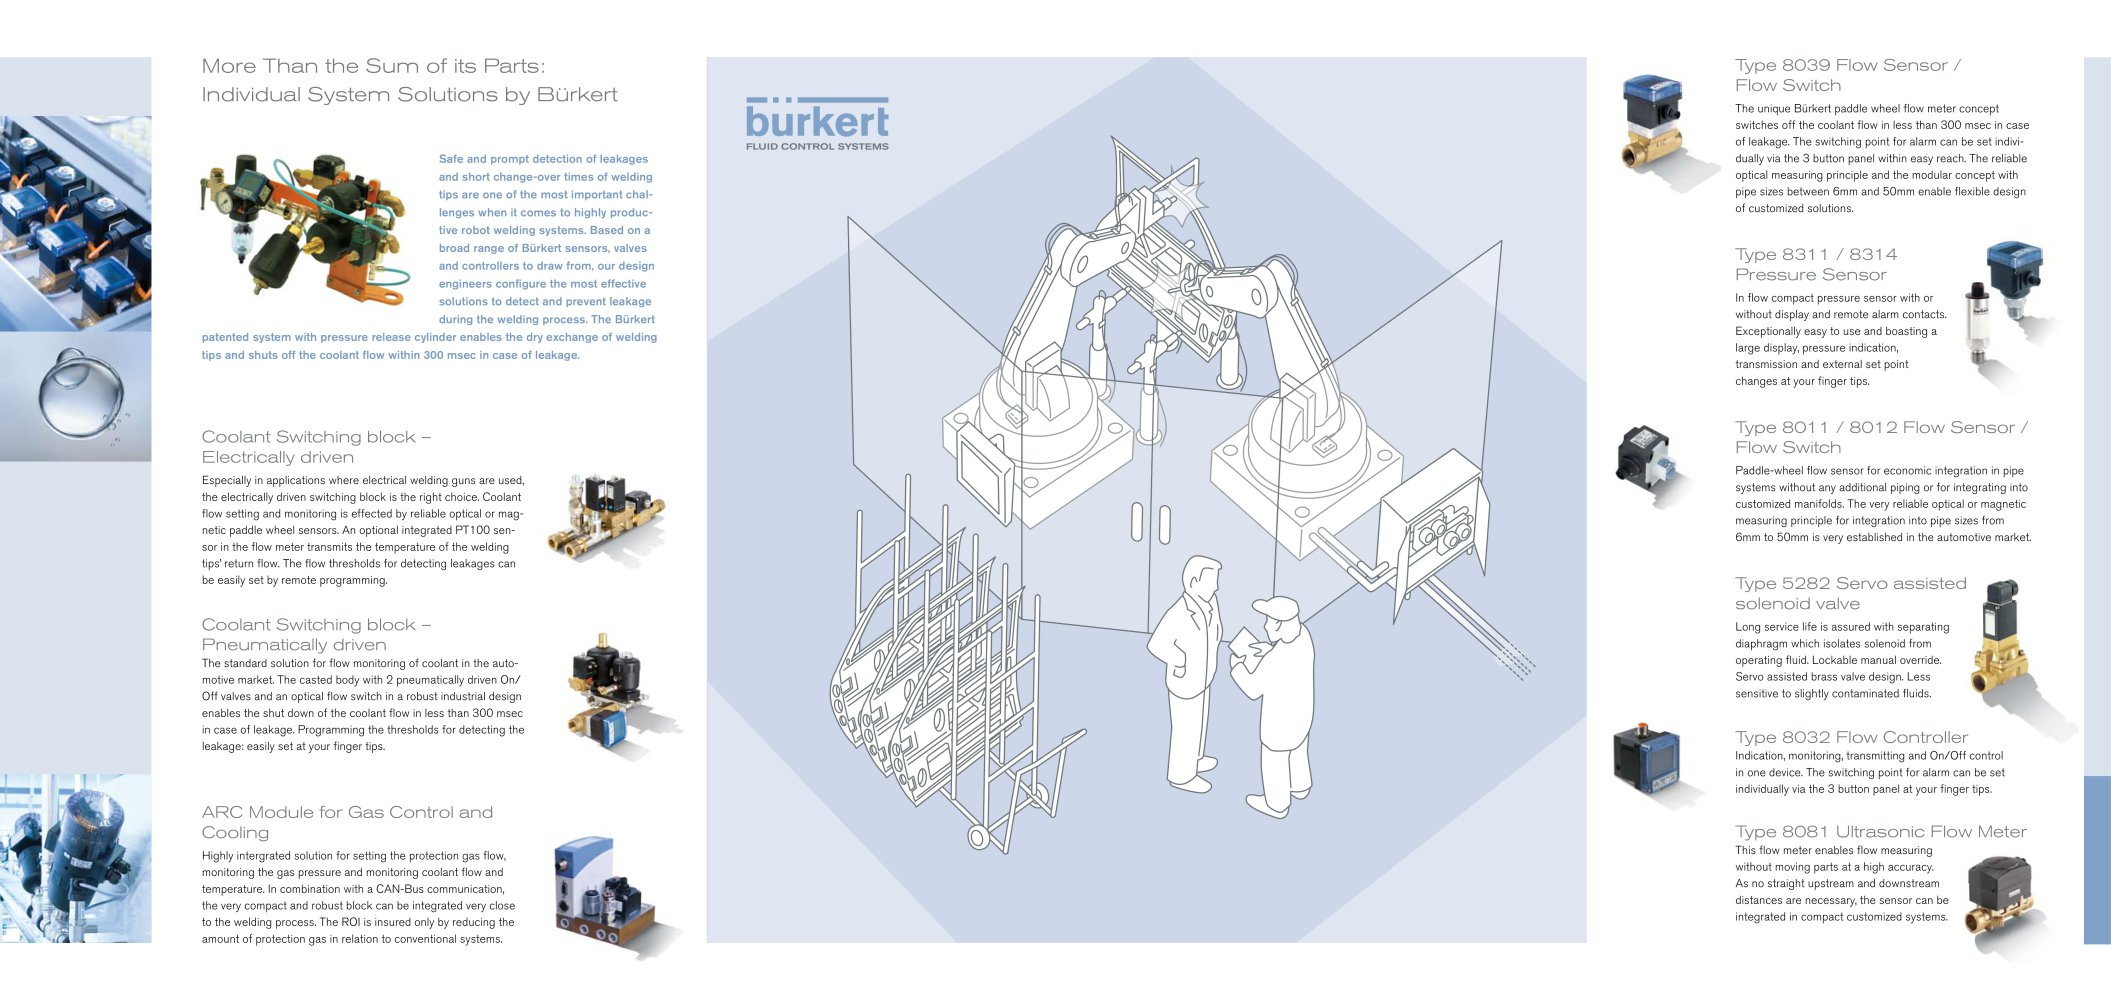 Robot Welding Brkert Fluid Control Systems Pdf Catalogue Diagram Of Process 1 2 Pages